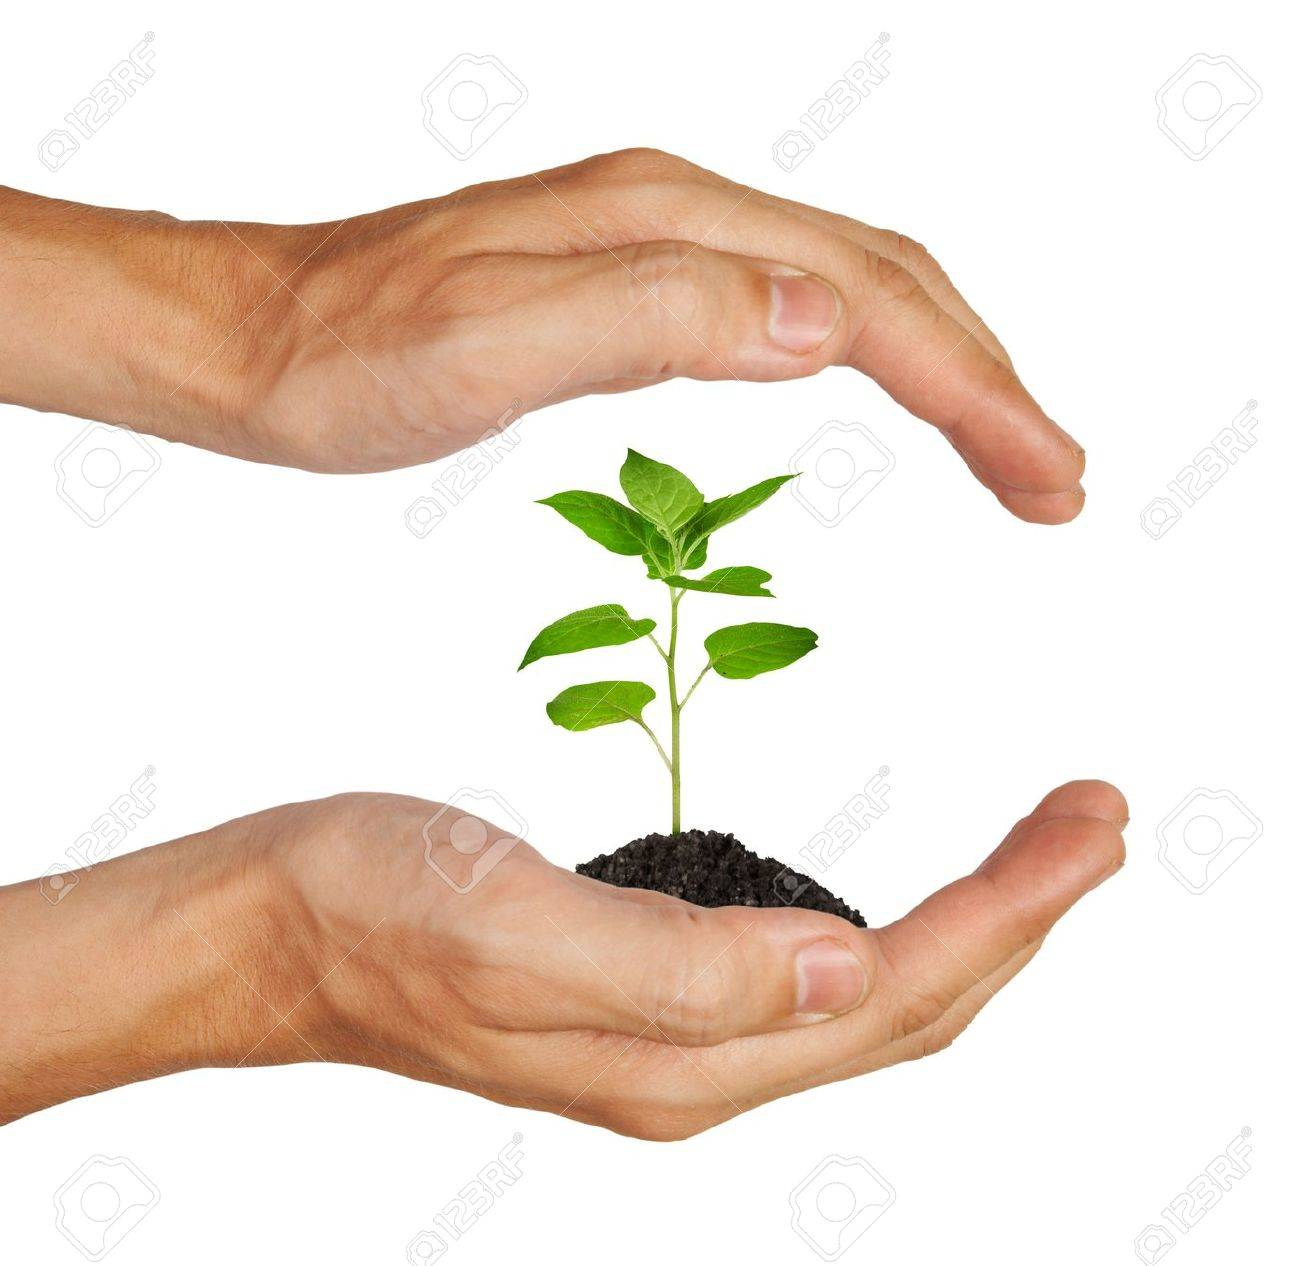 Growing green plant in a hand isolated on white background Stock Photo - 7237302